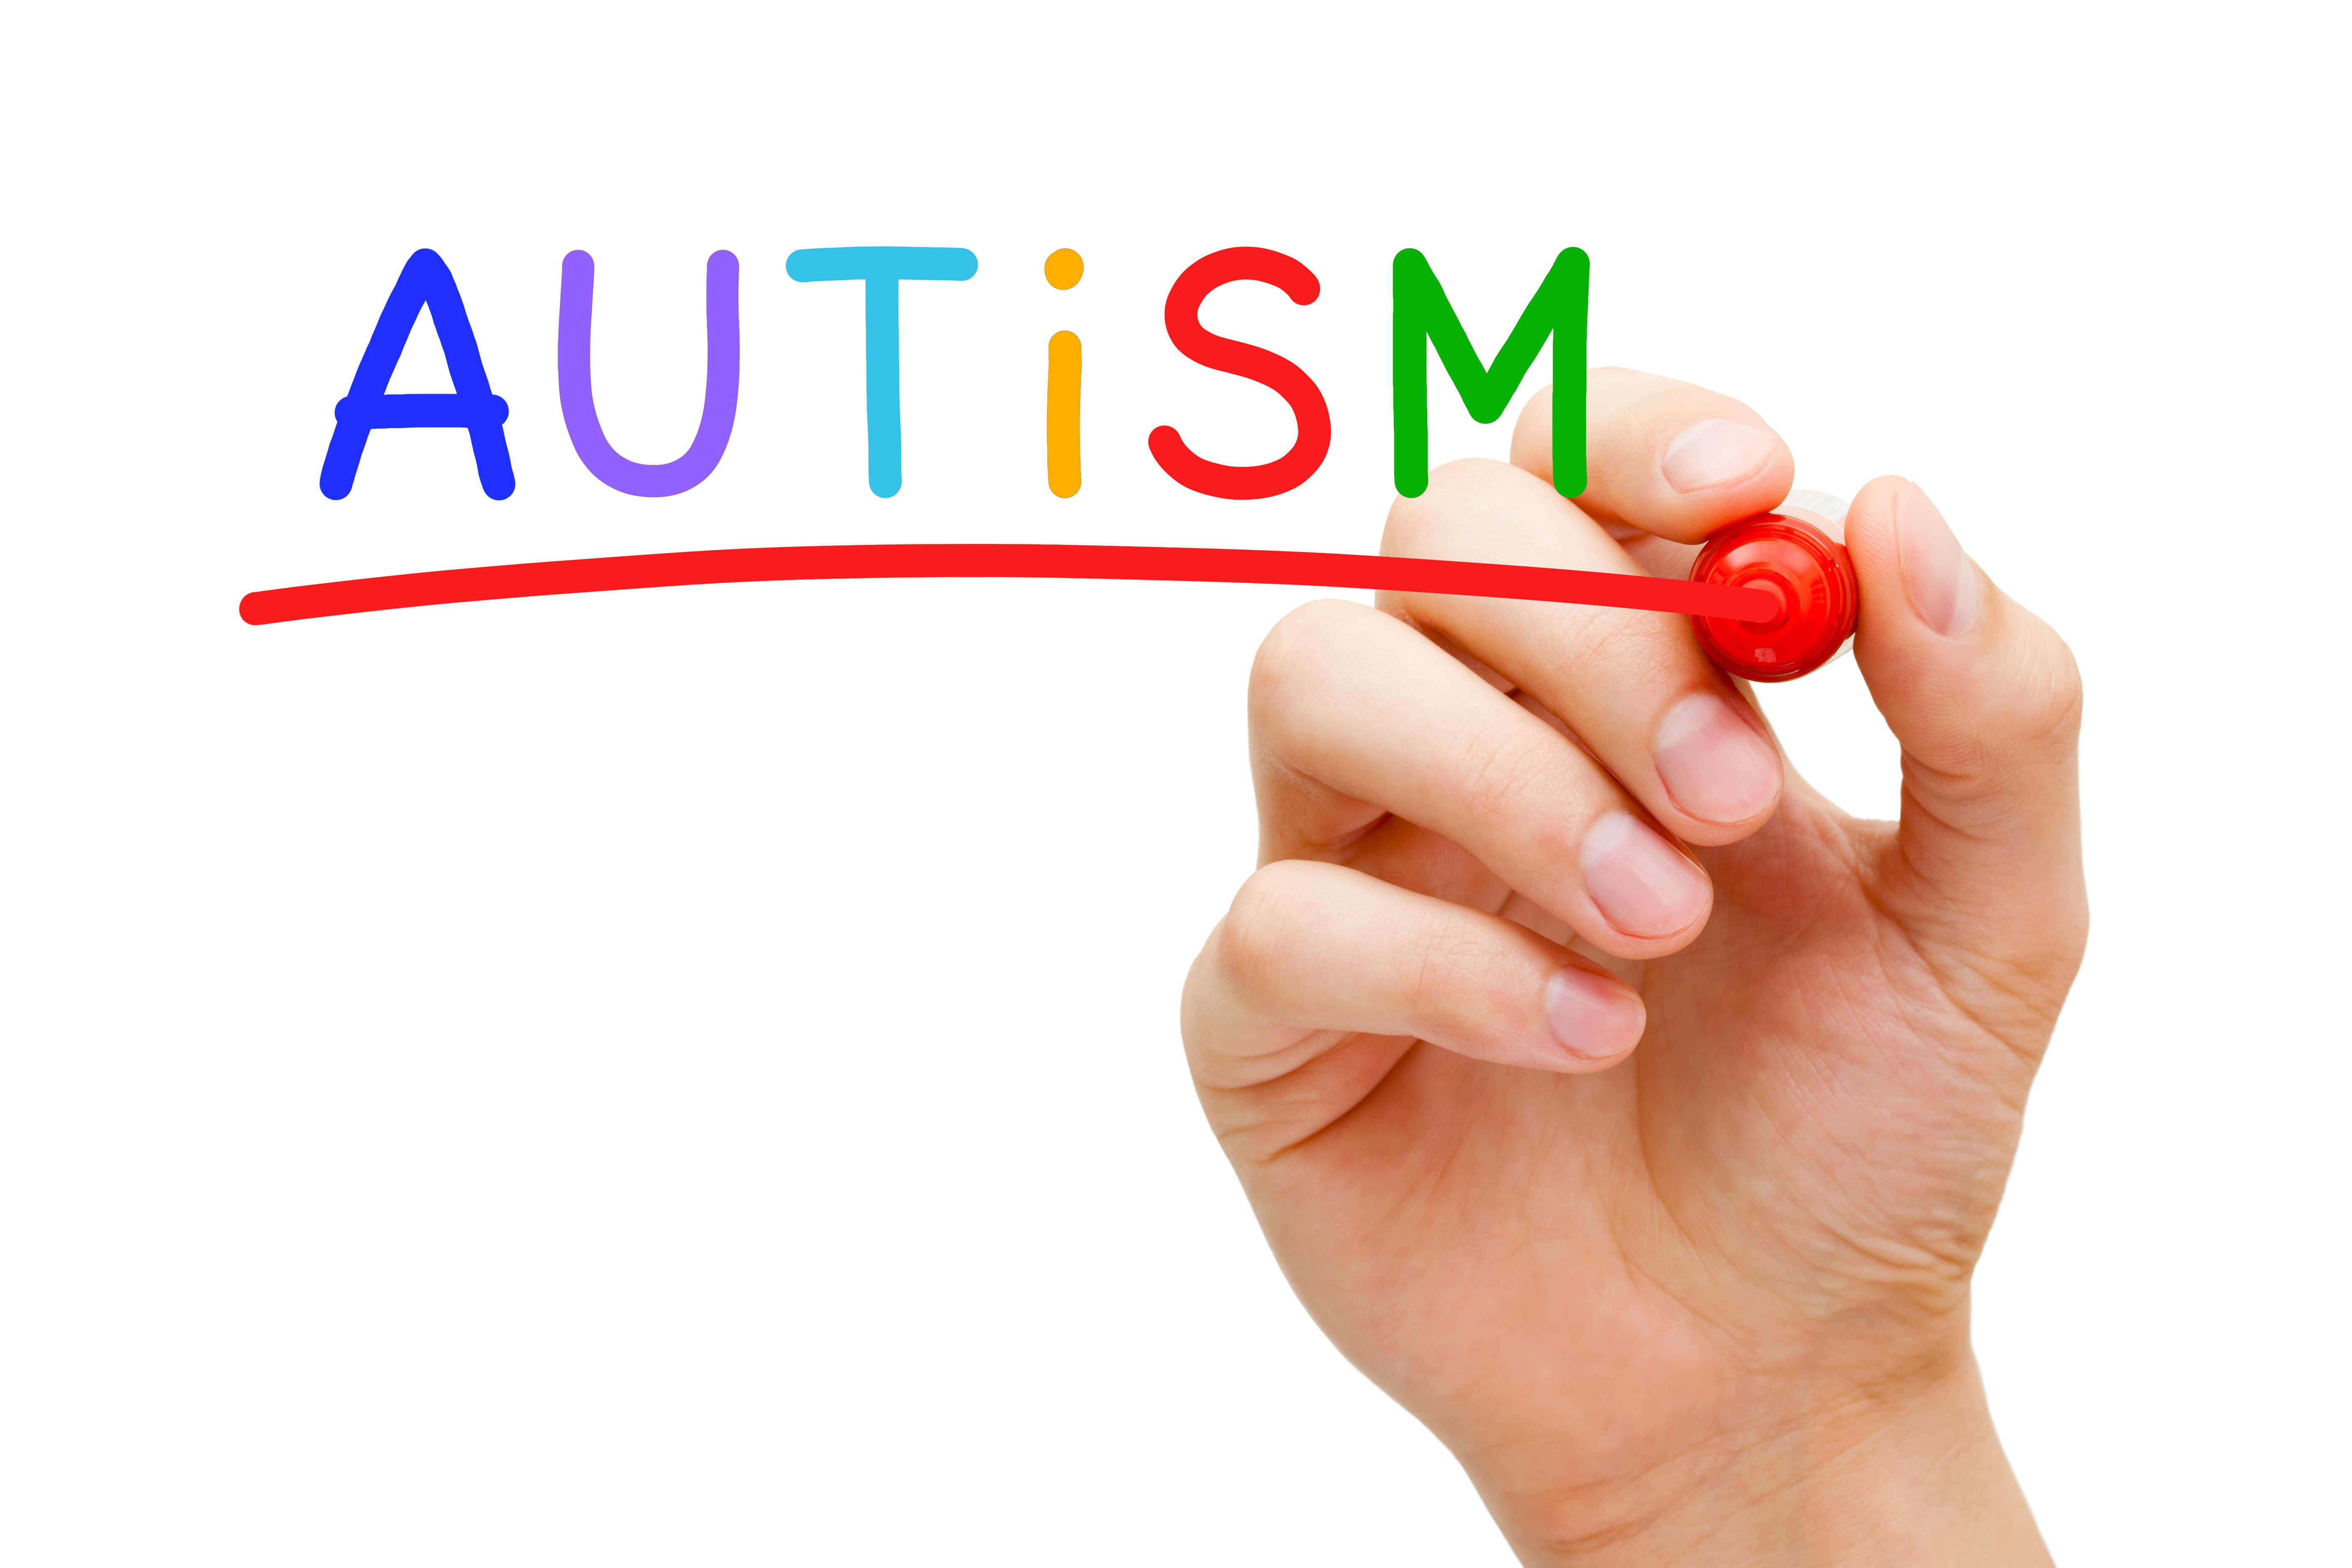 Autism and Stem Cells